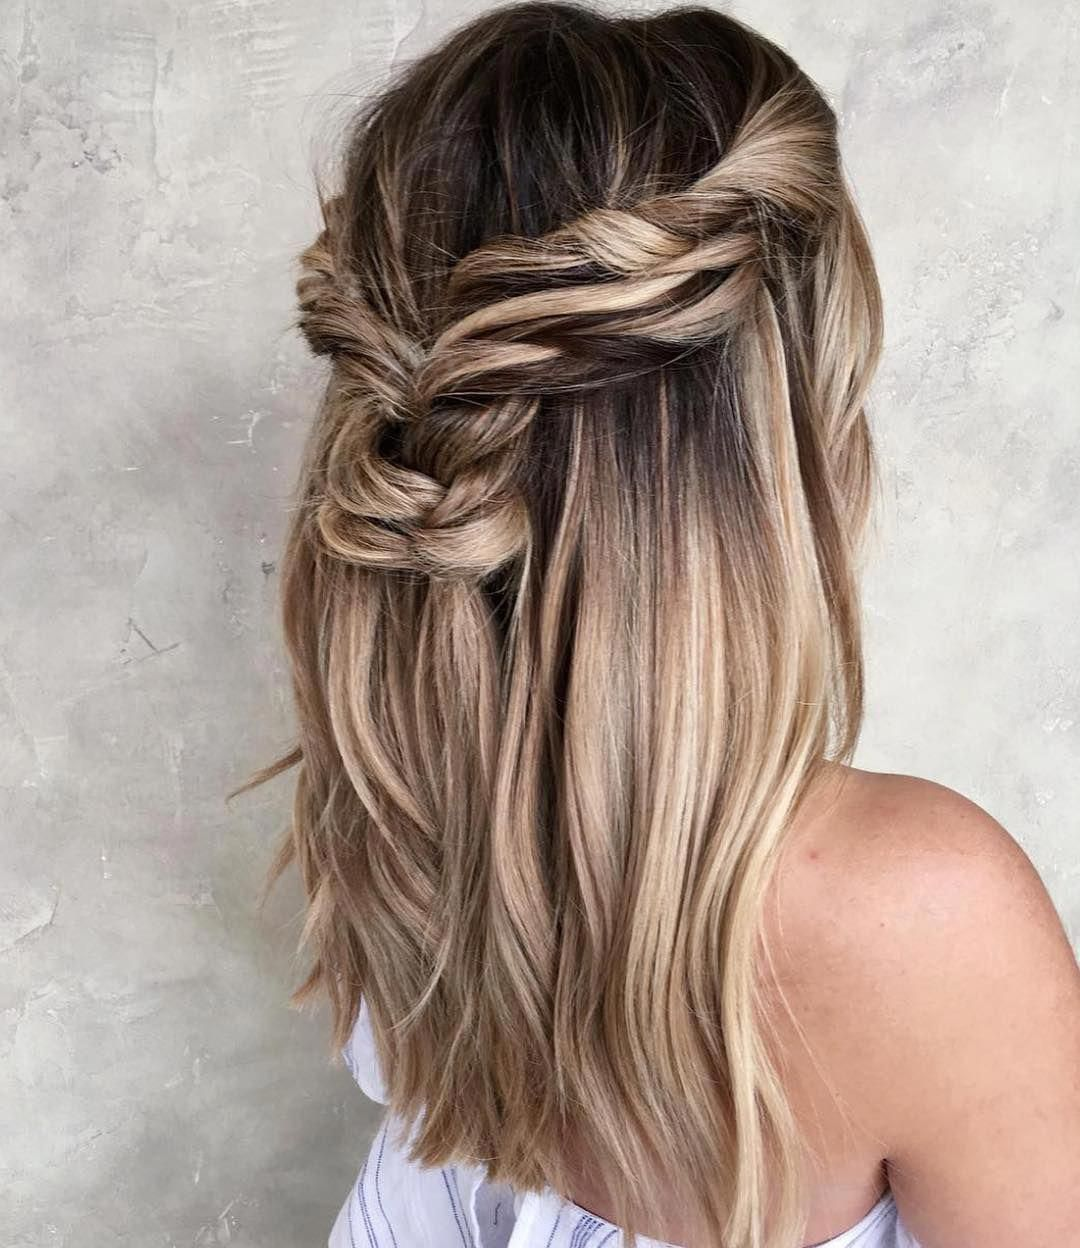 Naturally Straight | Cool Straight Hairstyles | Haircut For Silky Straight Hair 20190423 ...